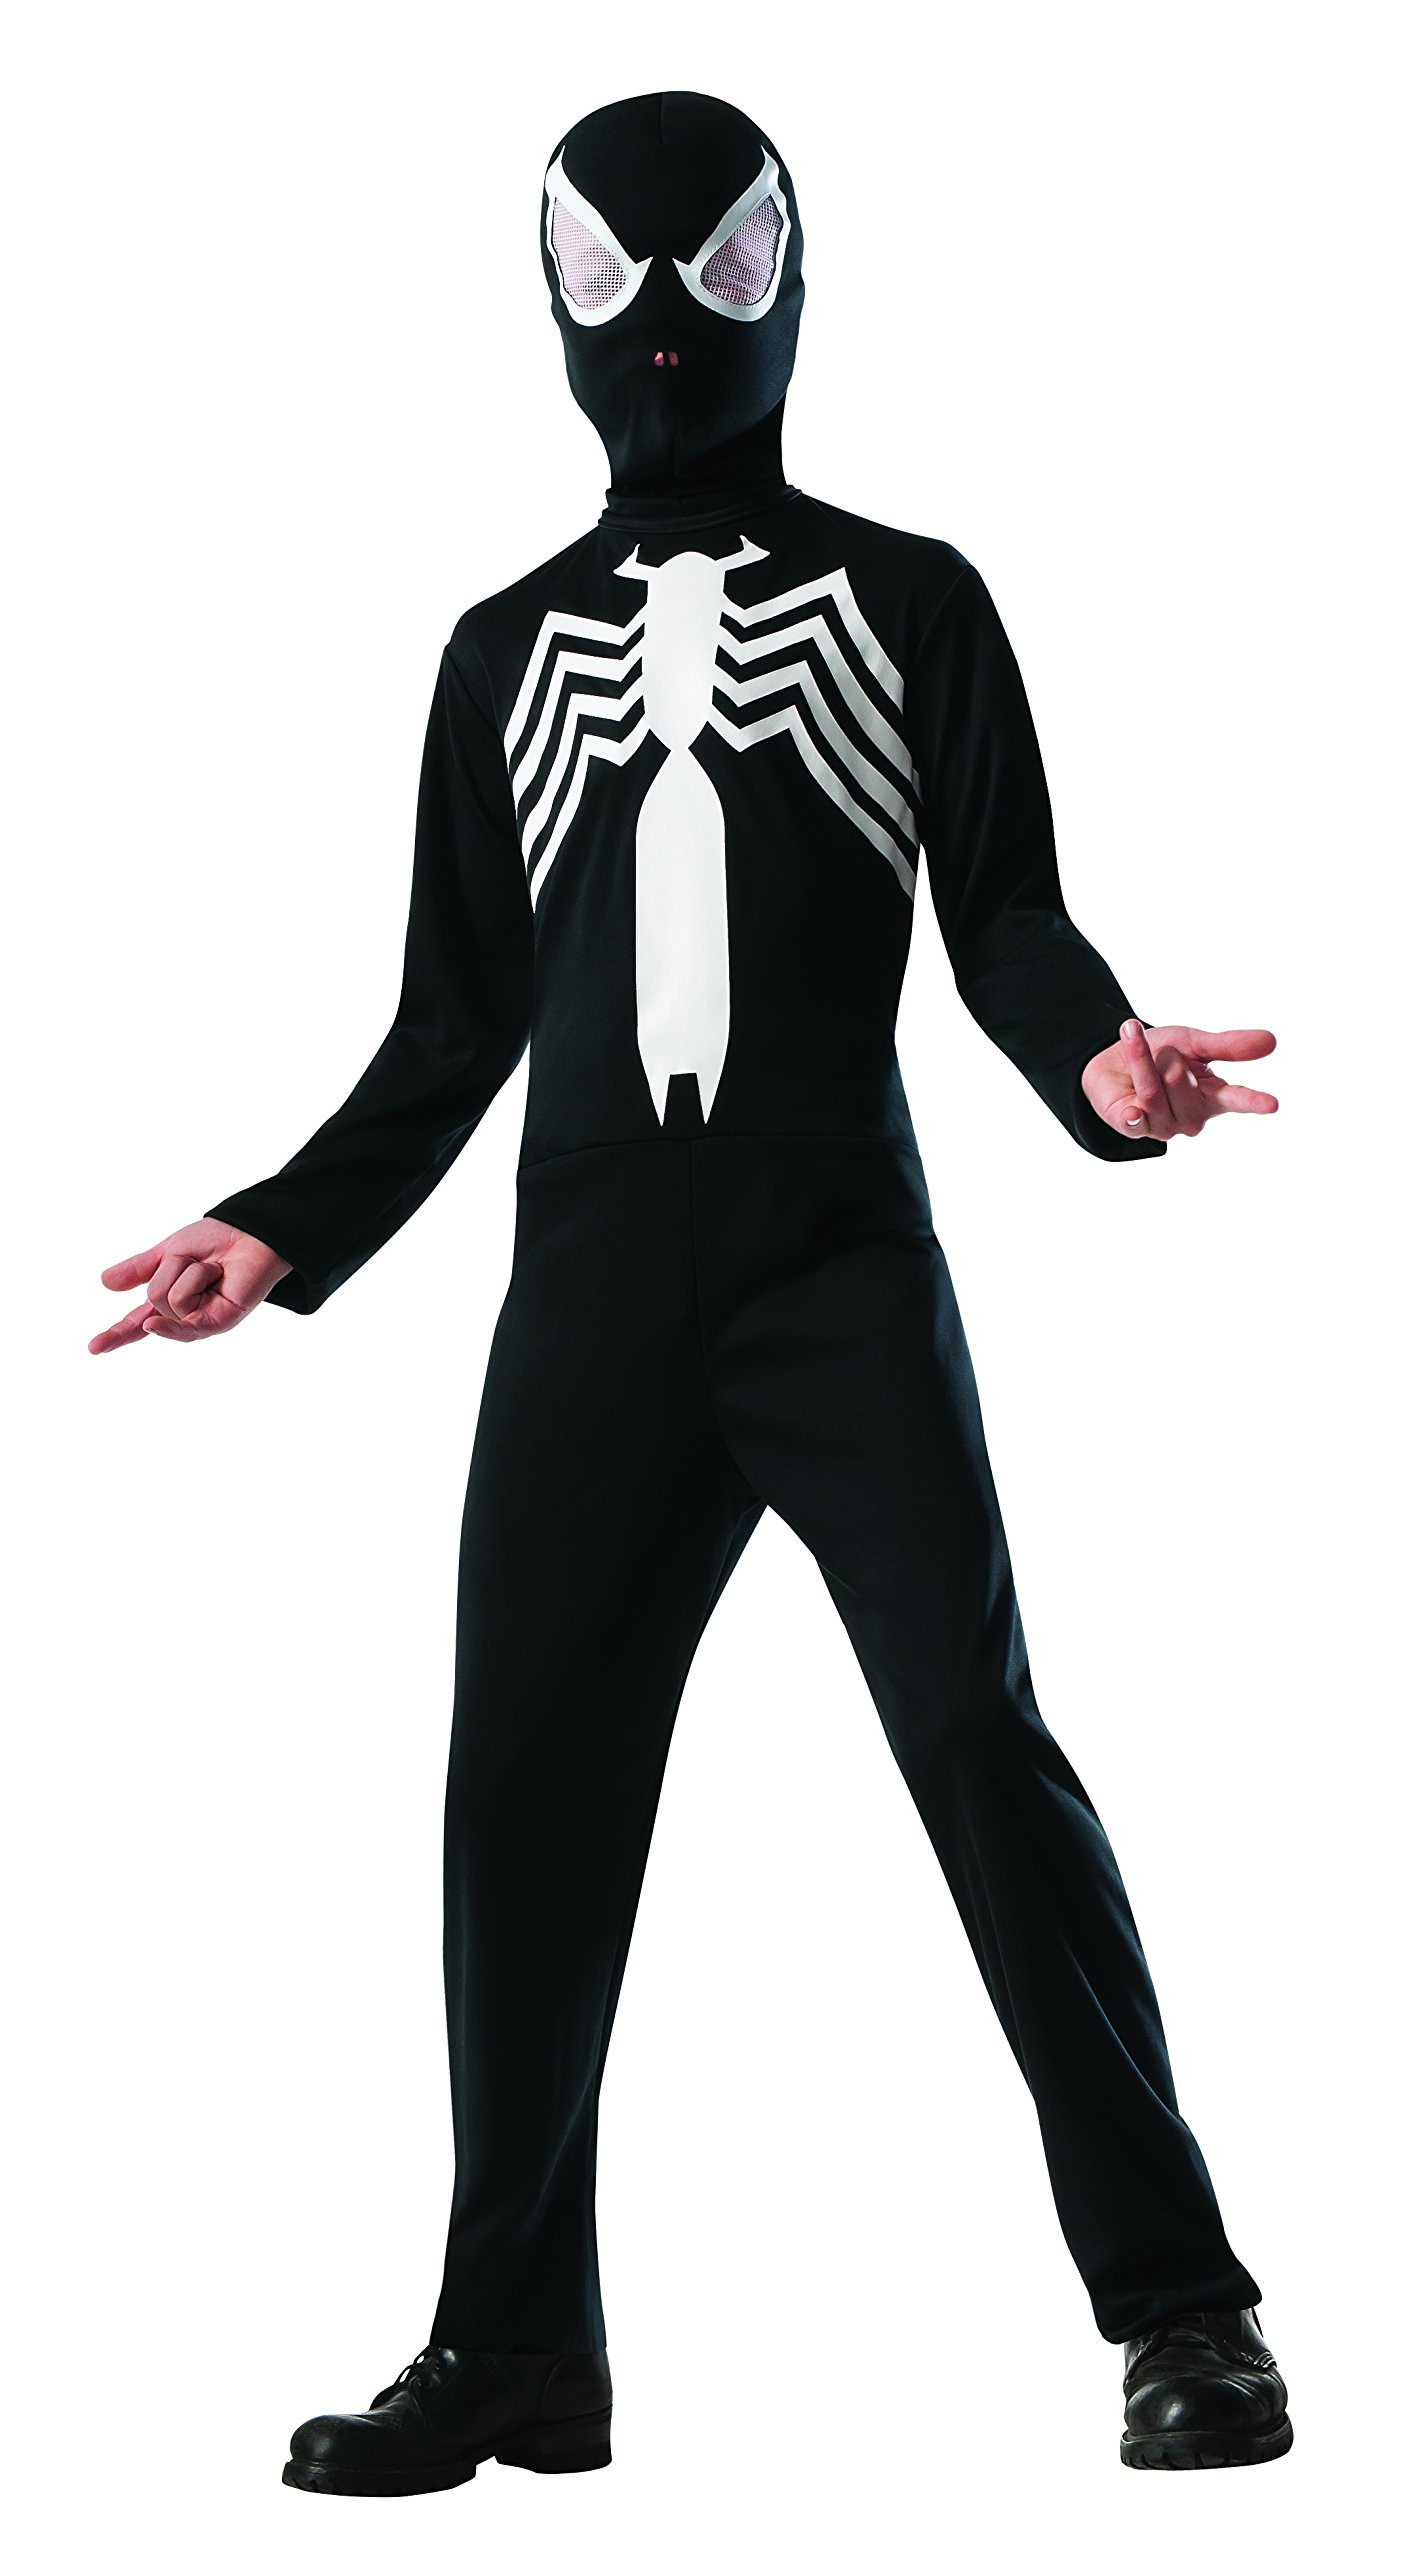 - 71ByCZXKq2L - Rubie's Marvel Ultimate Spider-Man/Venom Black Costume